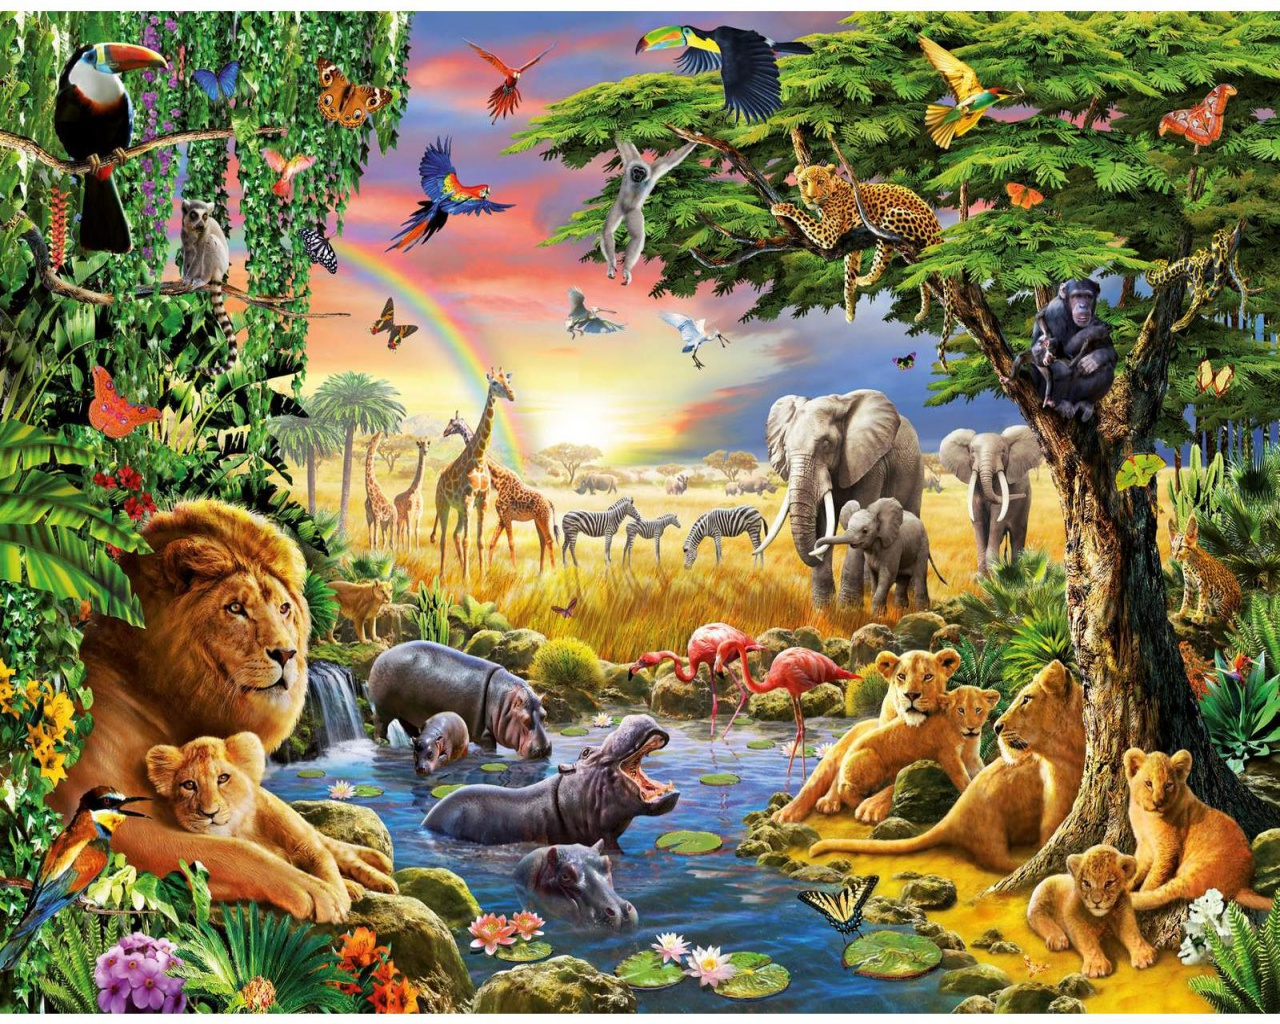 1280x1024 jungle animals four desktop pc and mac wallpaper for Home wallpaper jungle